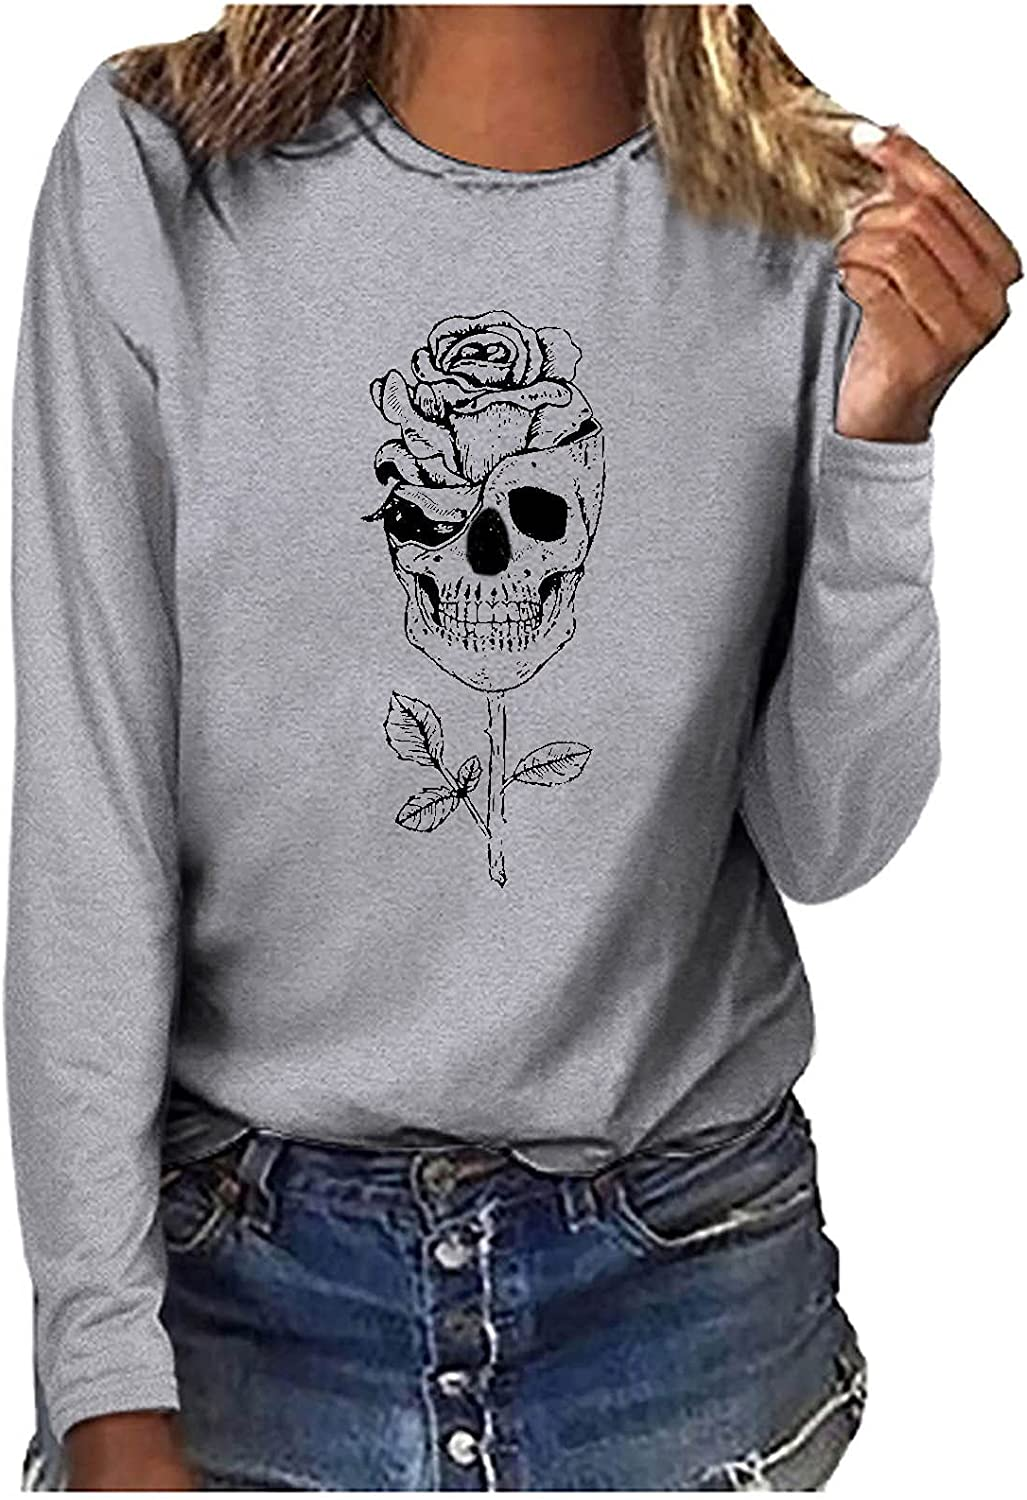 Halloween Sweatshirt Plus Size Tshirts for Women Fall Long Sleeves Crewneck Rose & Skull Graphic Casual Going Out Tops